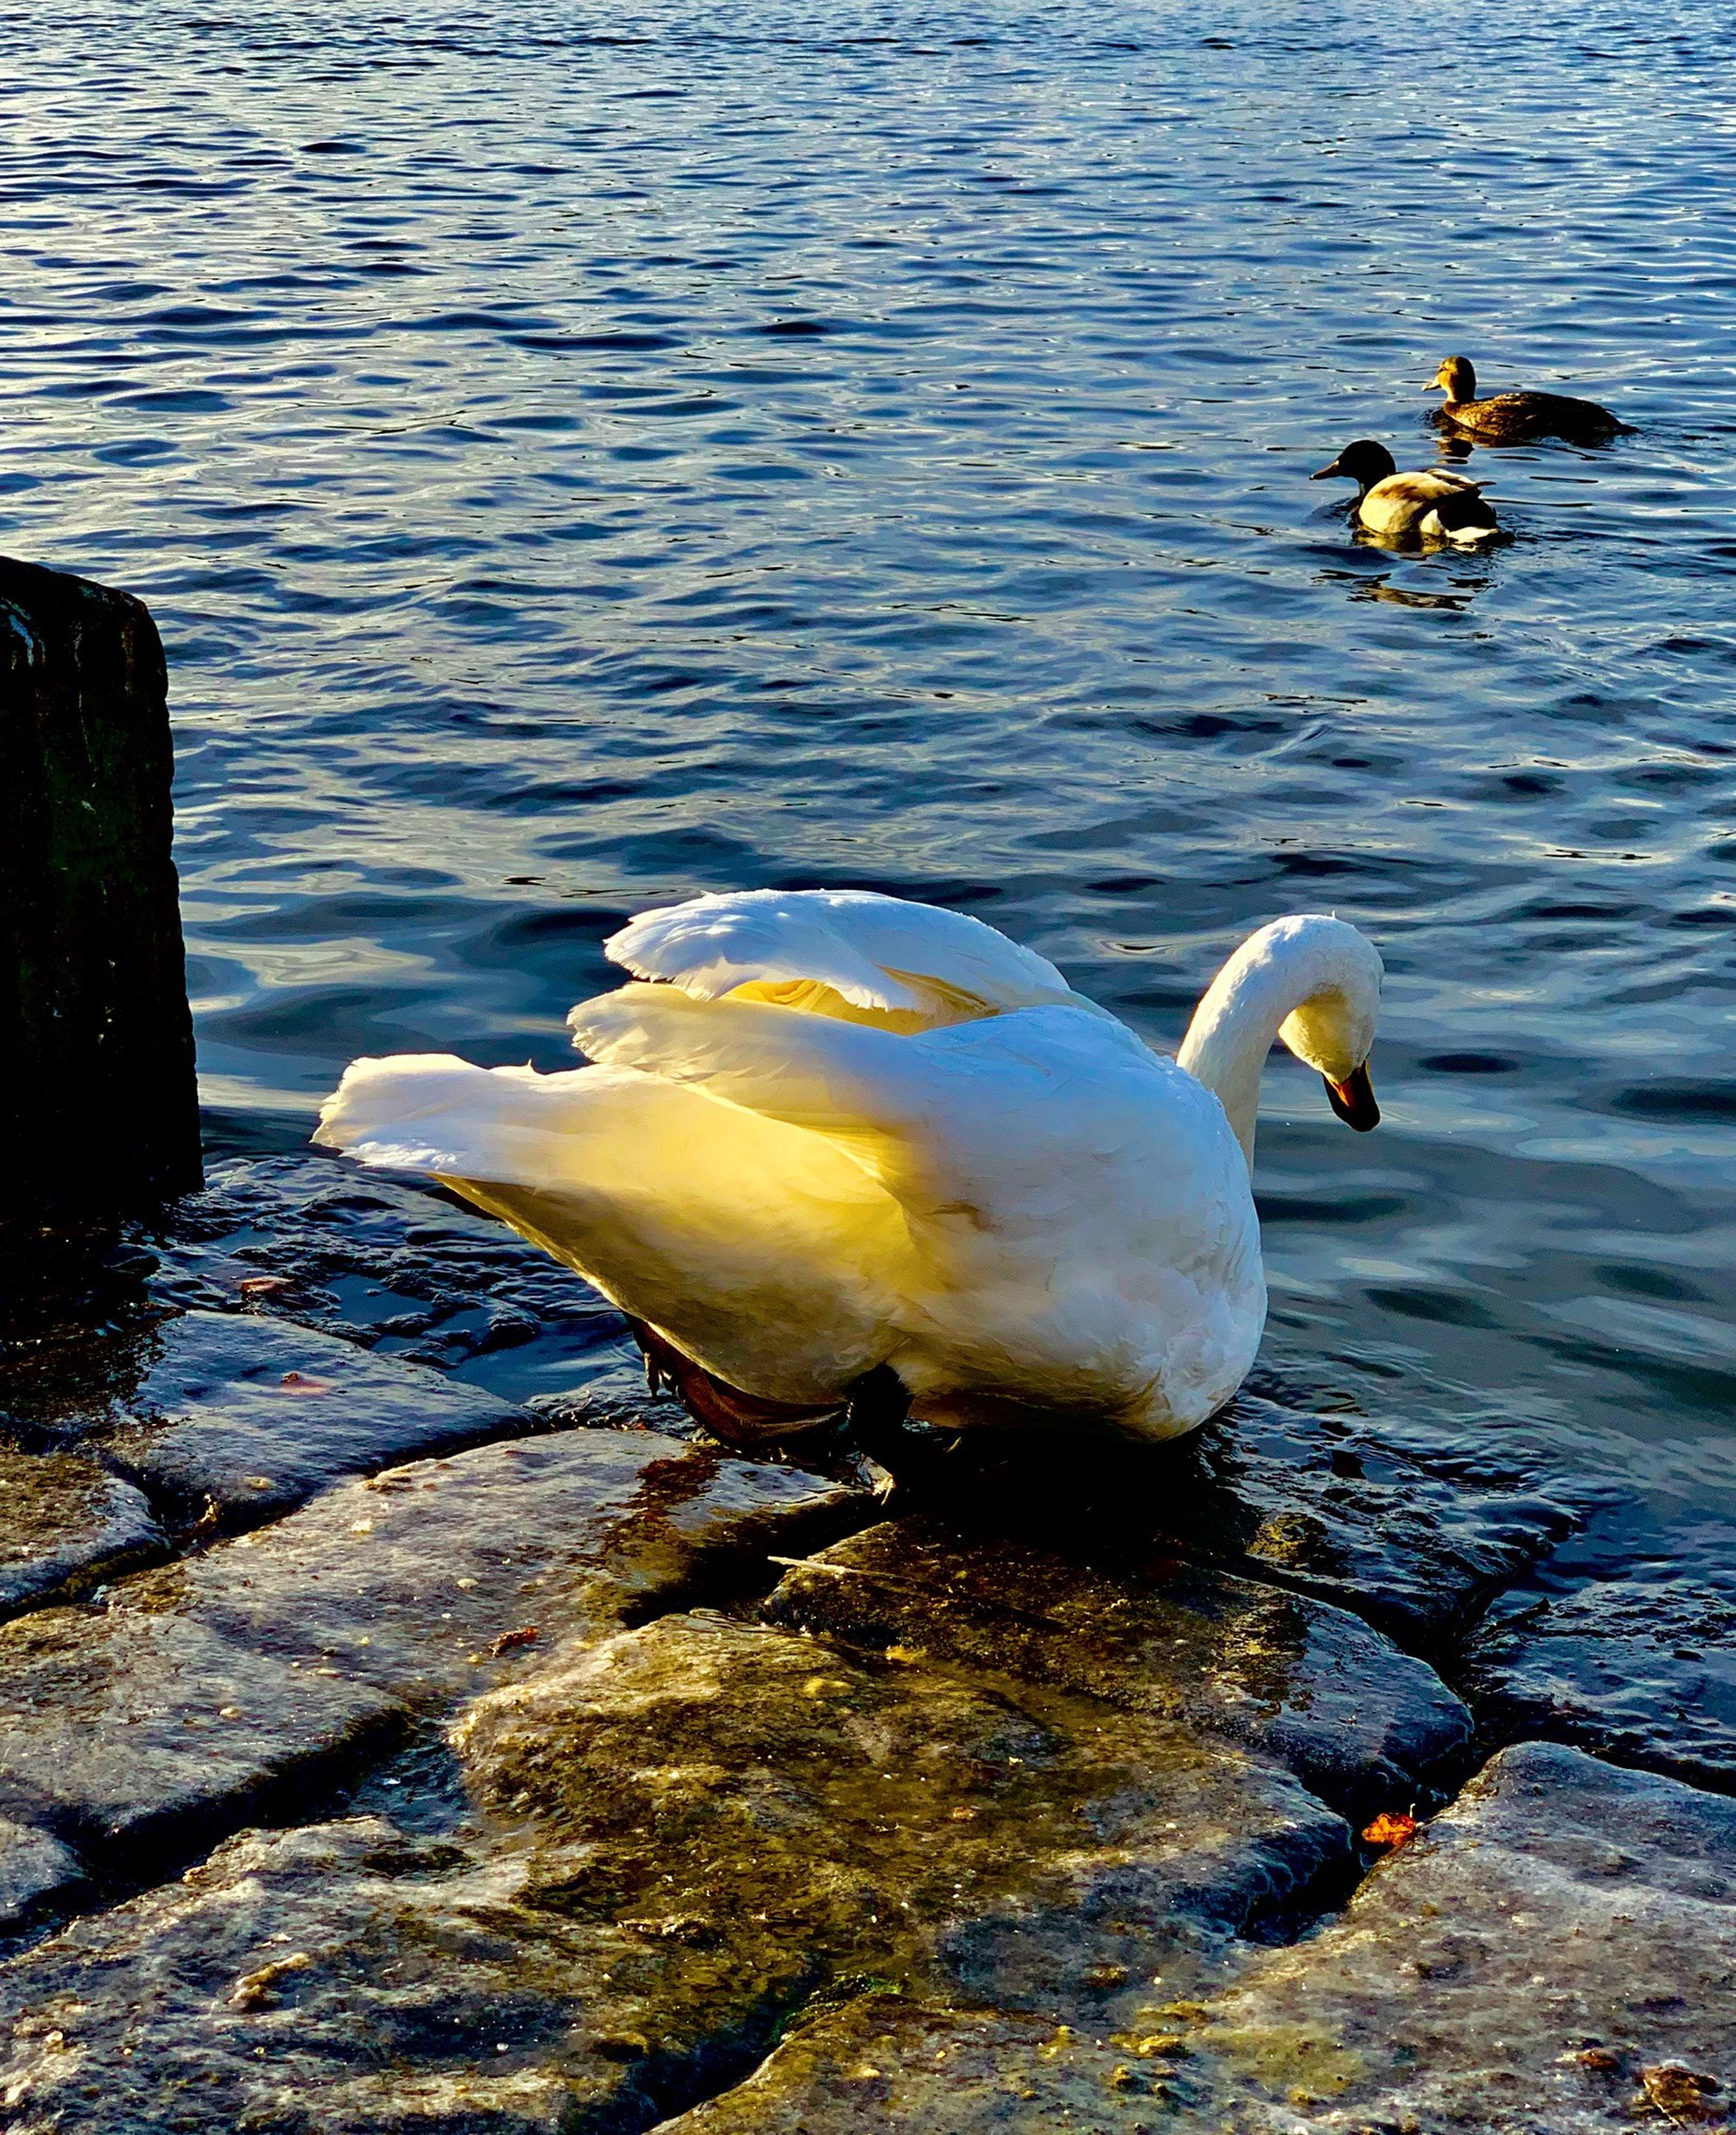 bird, water, animal themes, animal wildlife, animals in the wild, animal, vertebrate, lake, group of animals, swimming, duck, nature, no people, day, water bird, waterfront, poultry, beauty in nature, rock, outdoors, floating on water